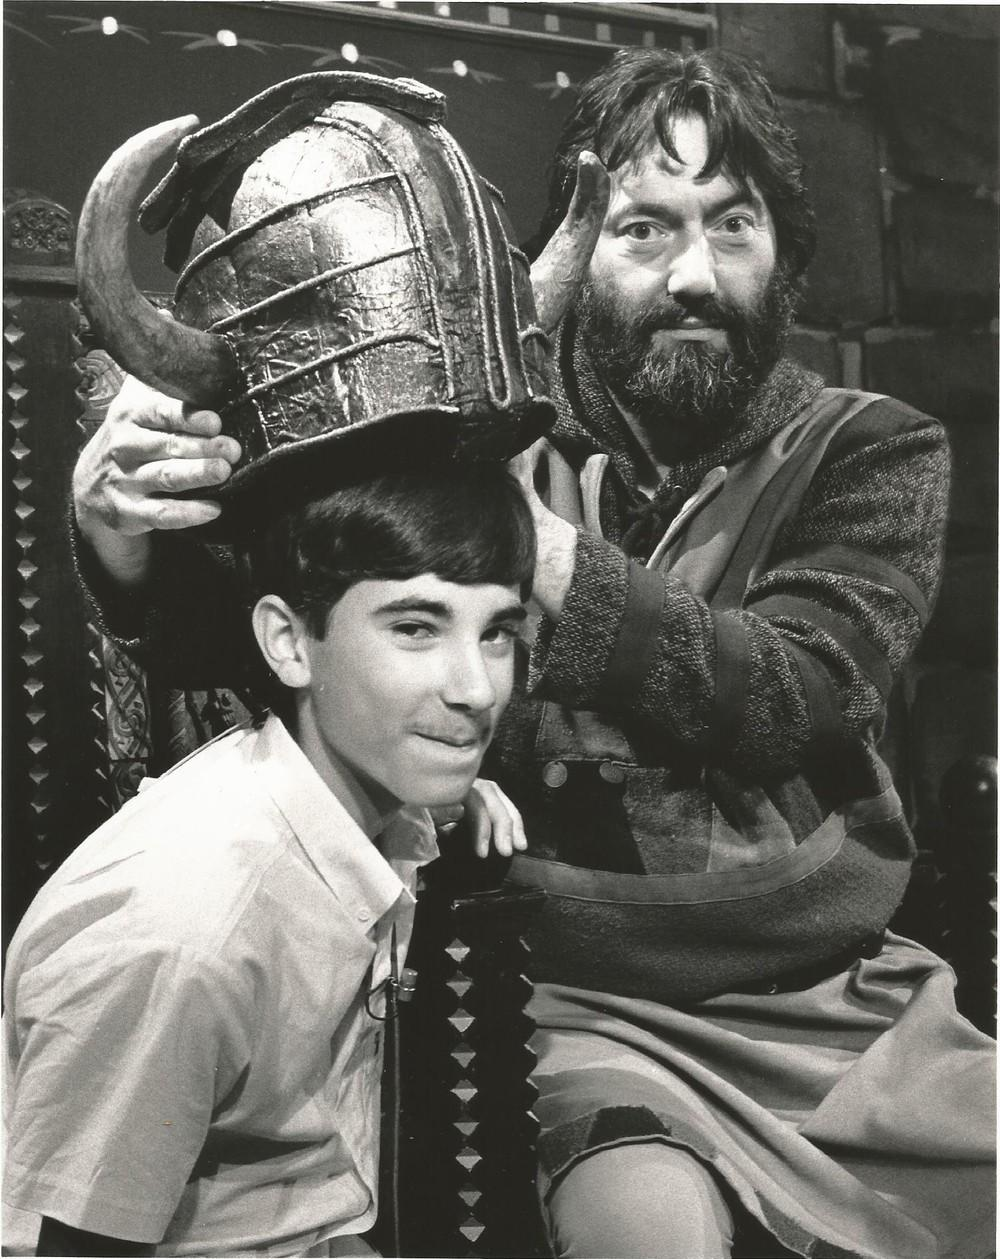 meeting-the-winners-of-knightmare-the-dark-souls-of-childrens-tv-615-body-image-1474816789-size_1000